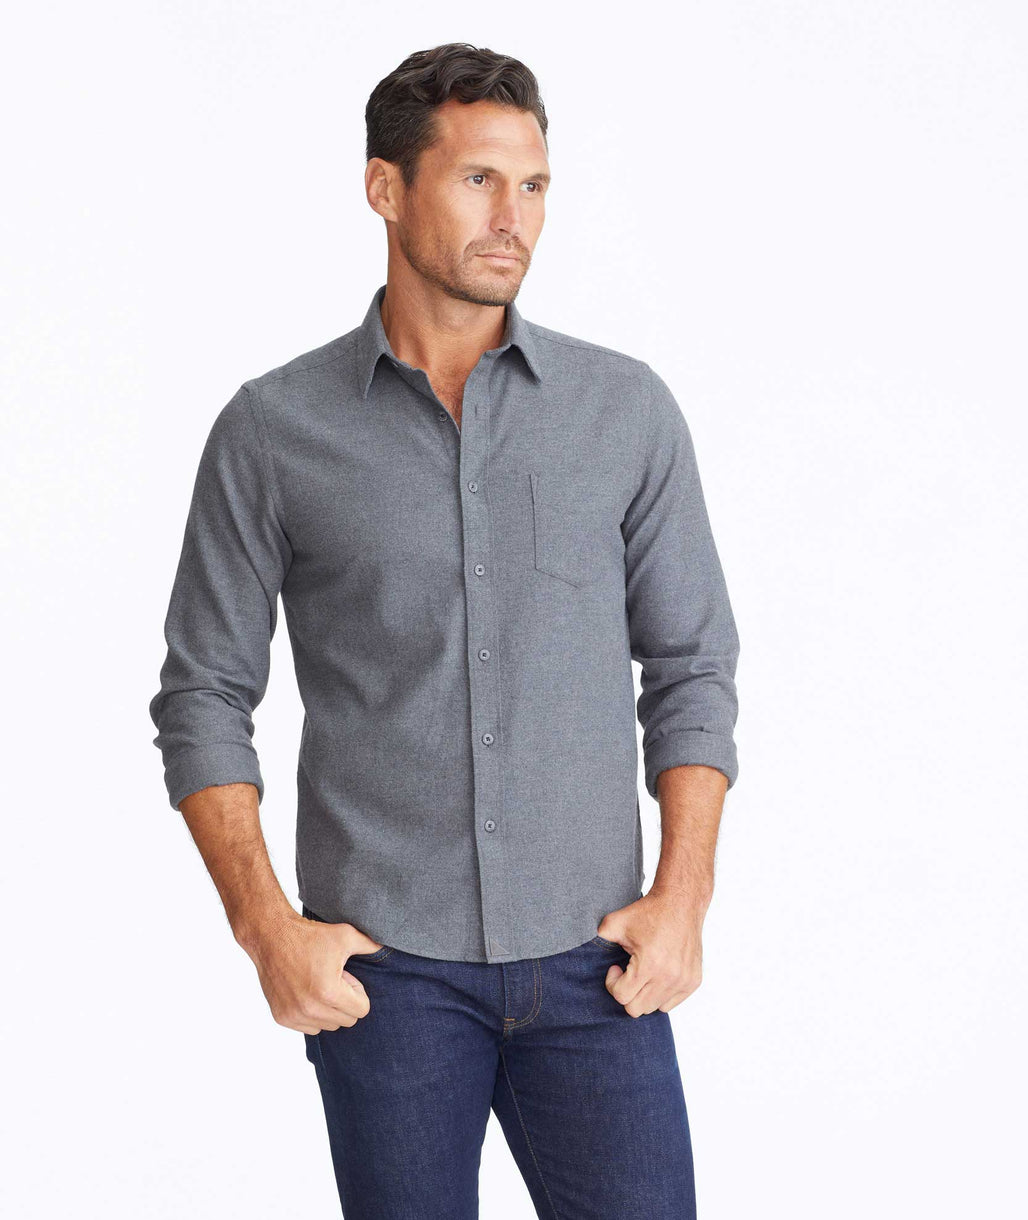 Model wearing a Dark Grey Flannel Sherwood Shirt